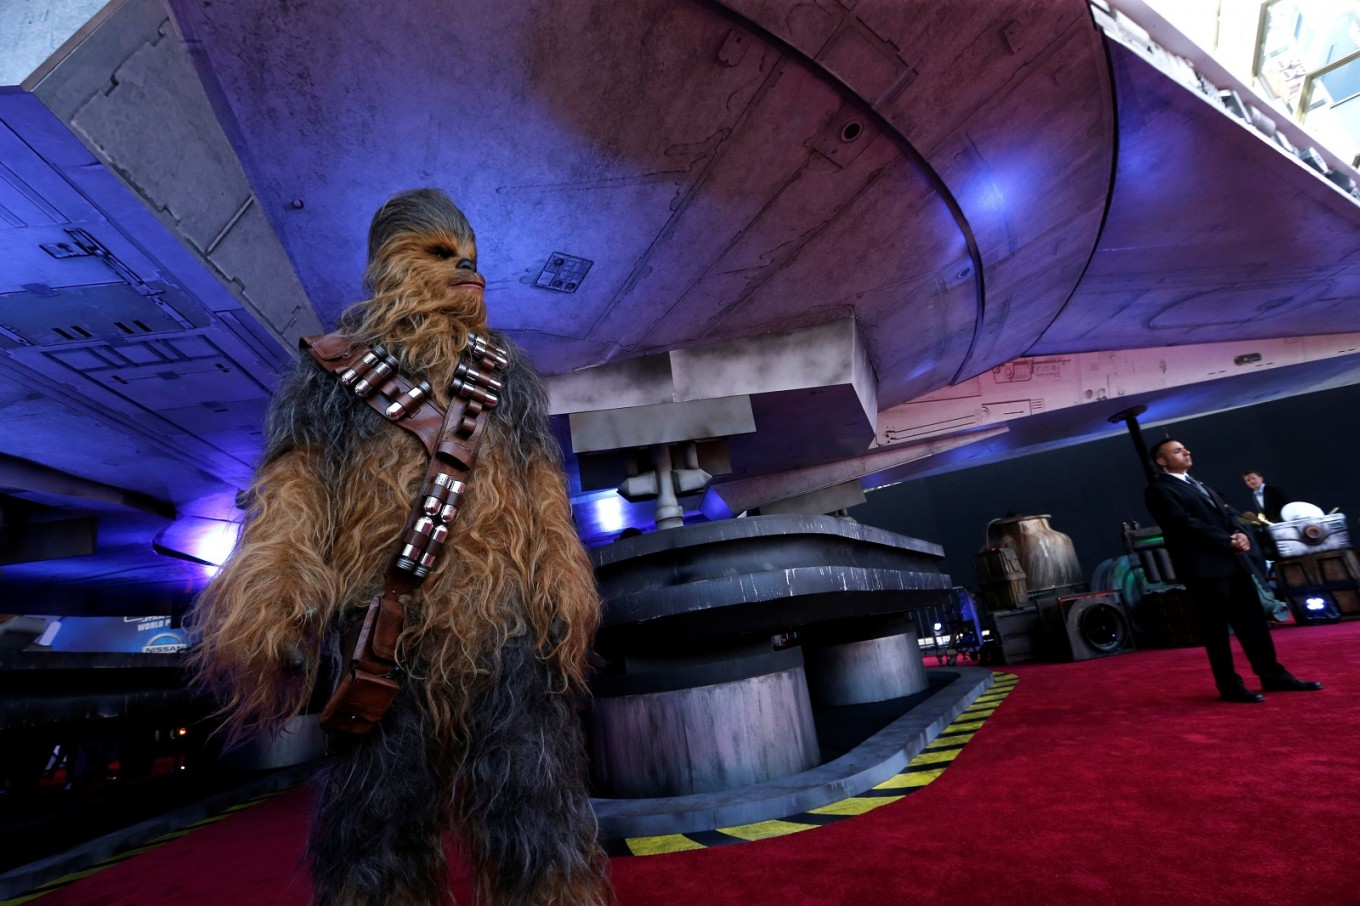 'Star Wars' spaceship lands at Disney's 'Solo' premiere in Hollywood